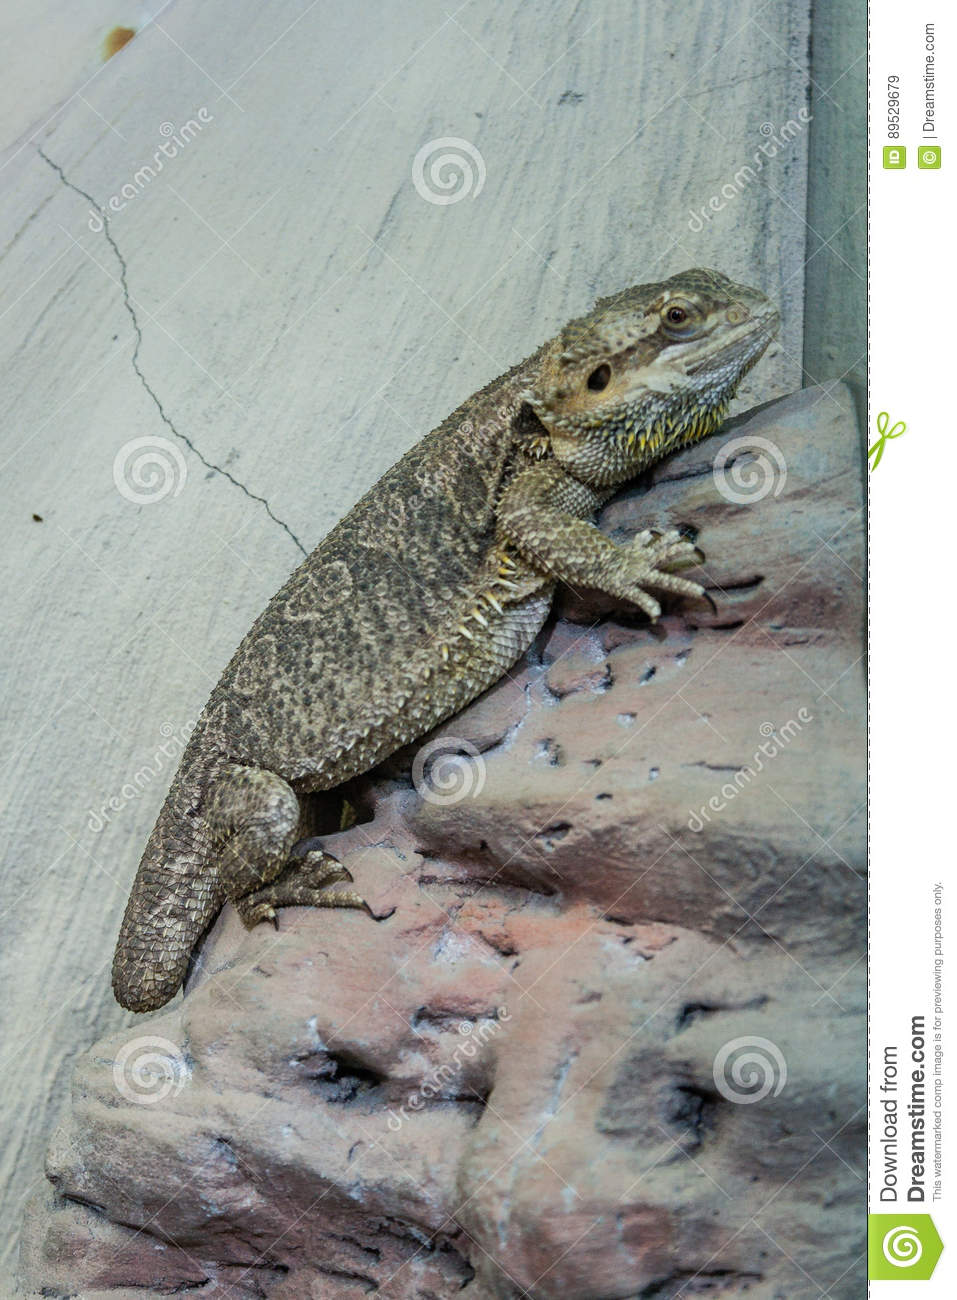 The lizard sits on a rock